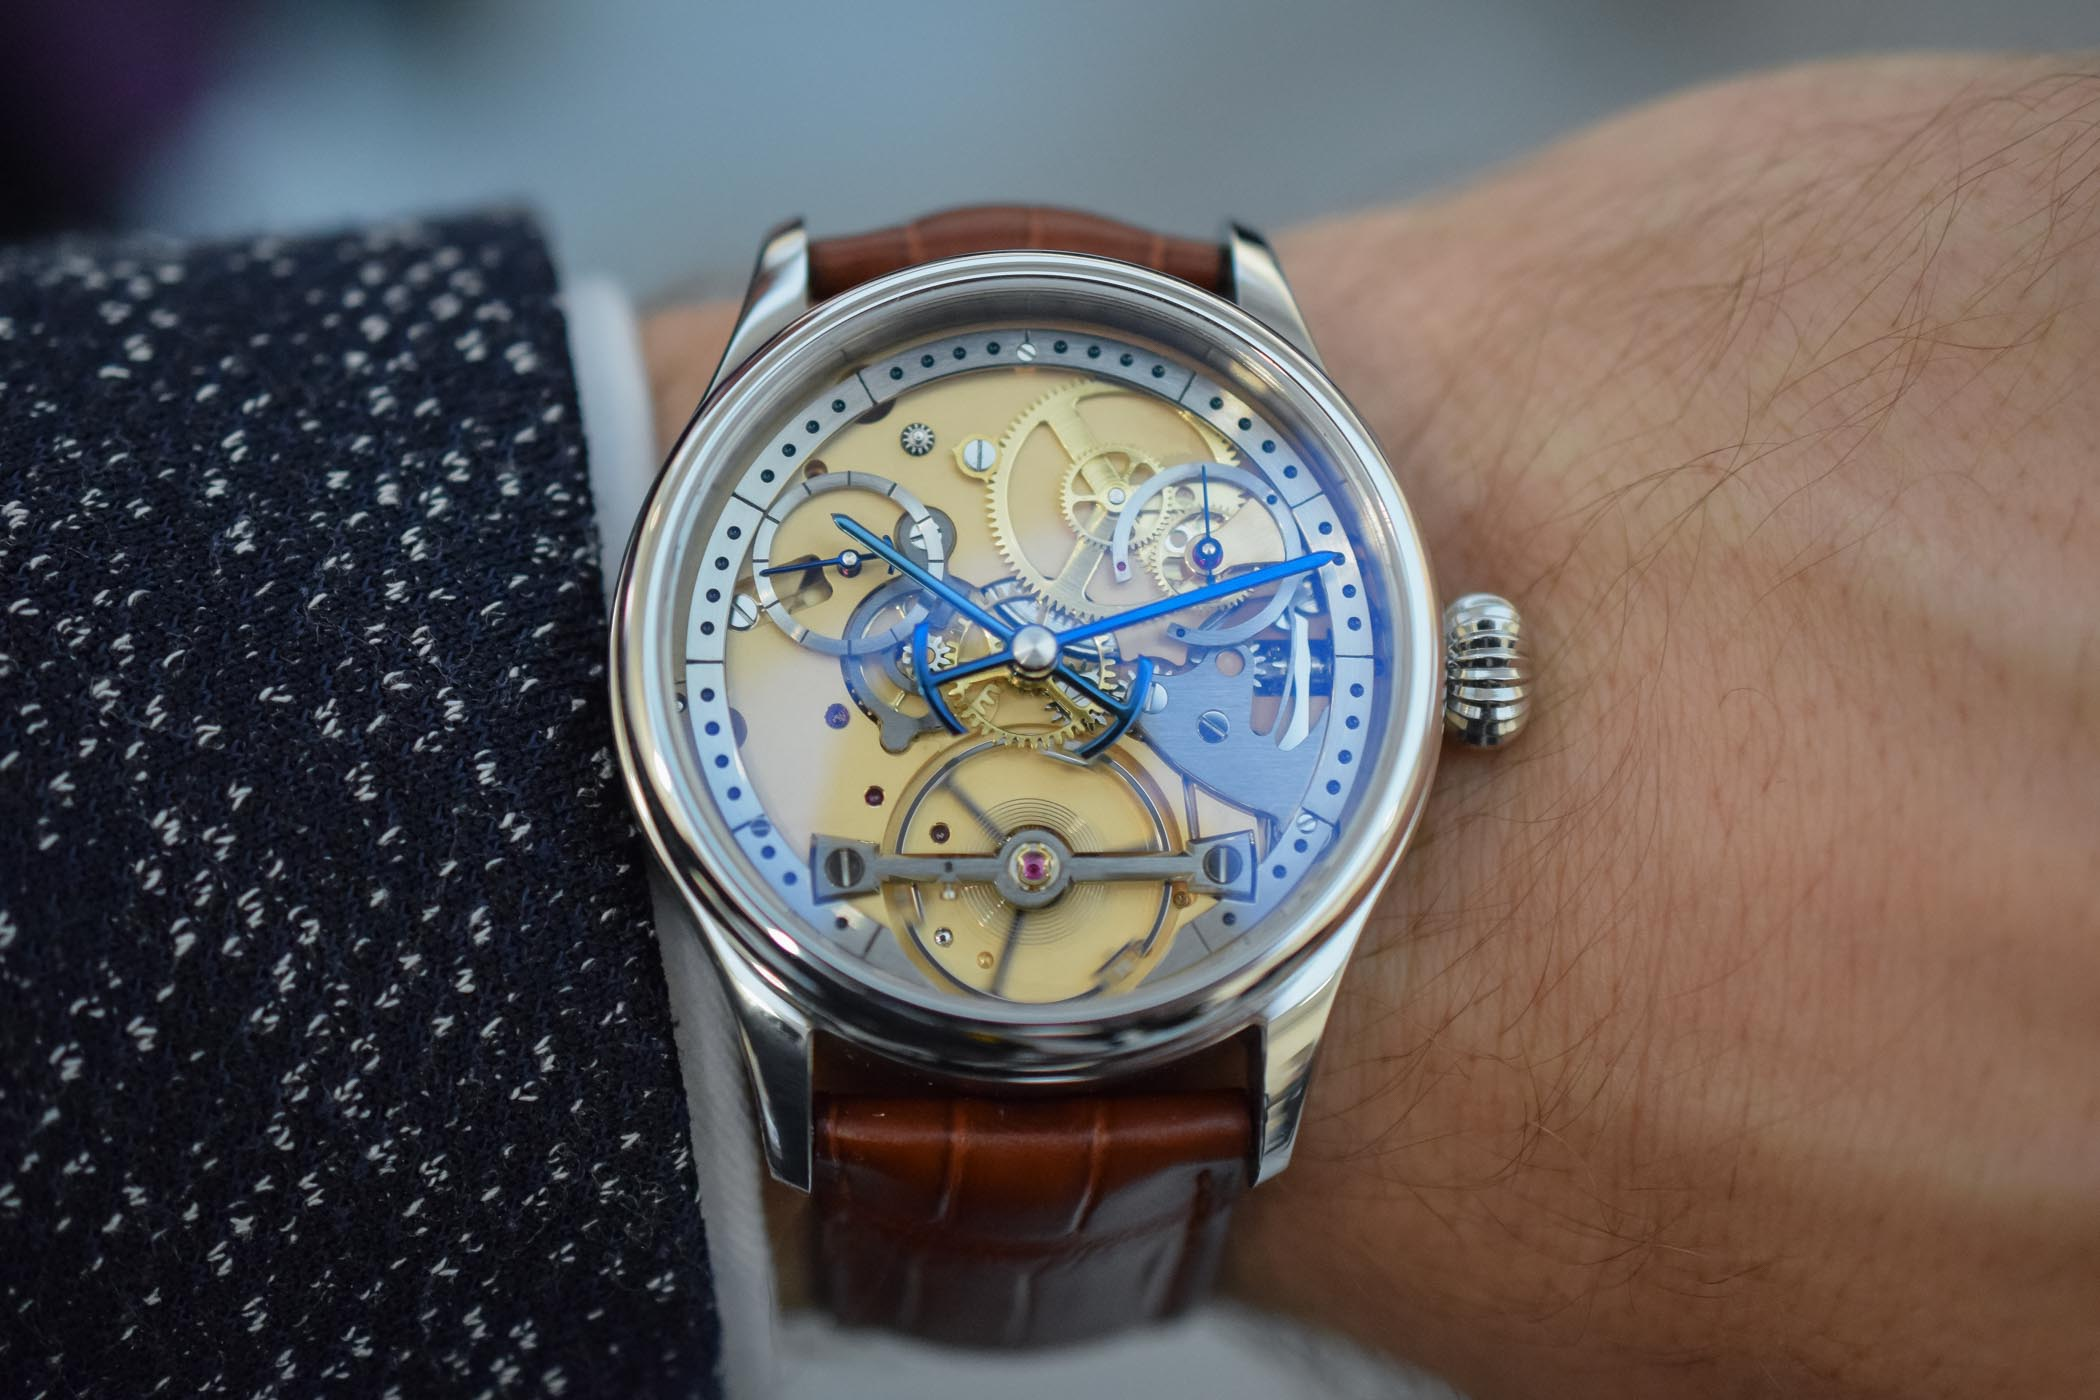 Garrick S1 Prototype Skeletonized Dial